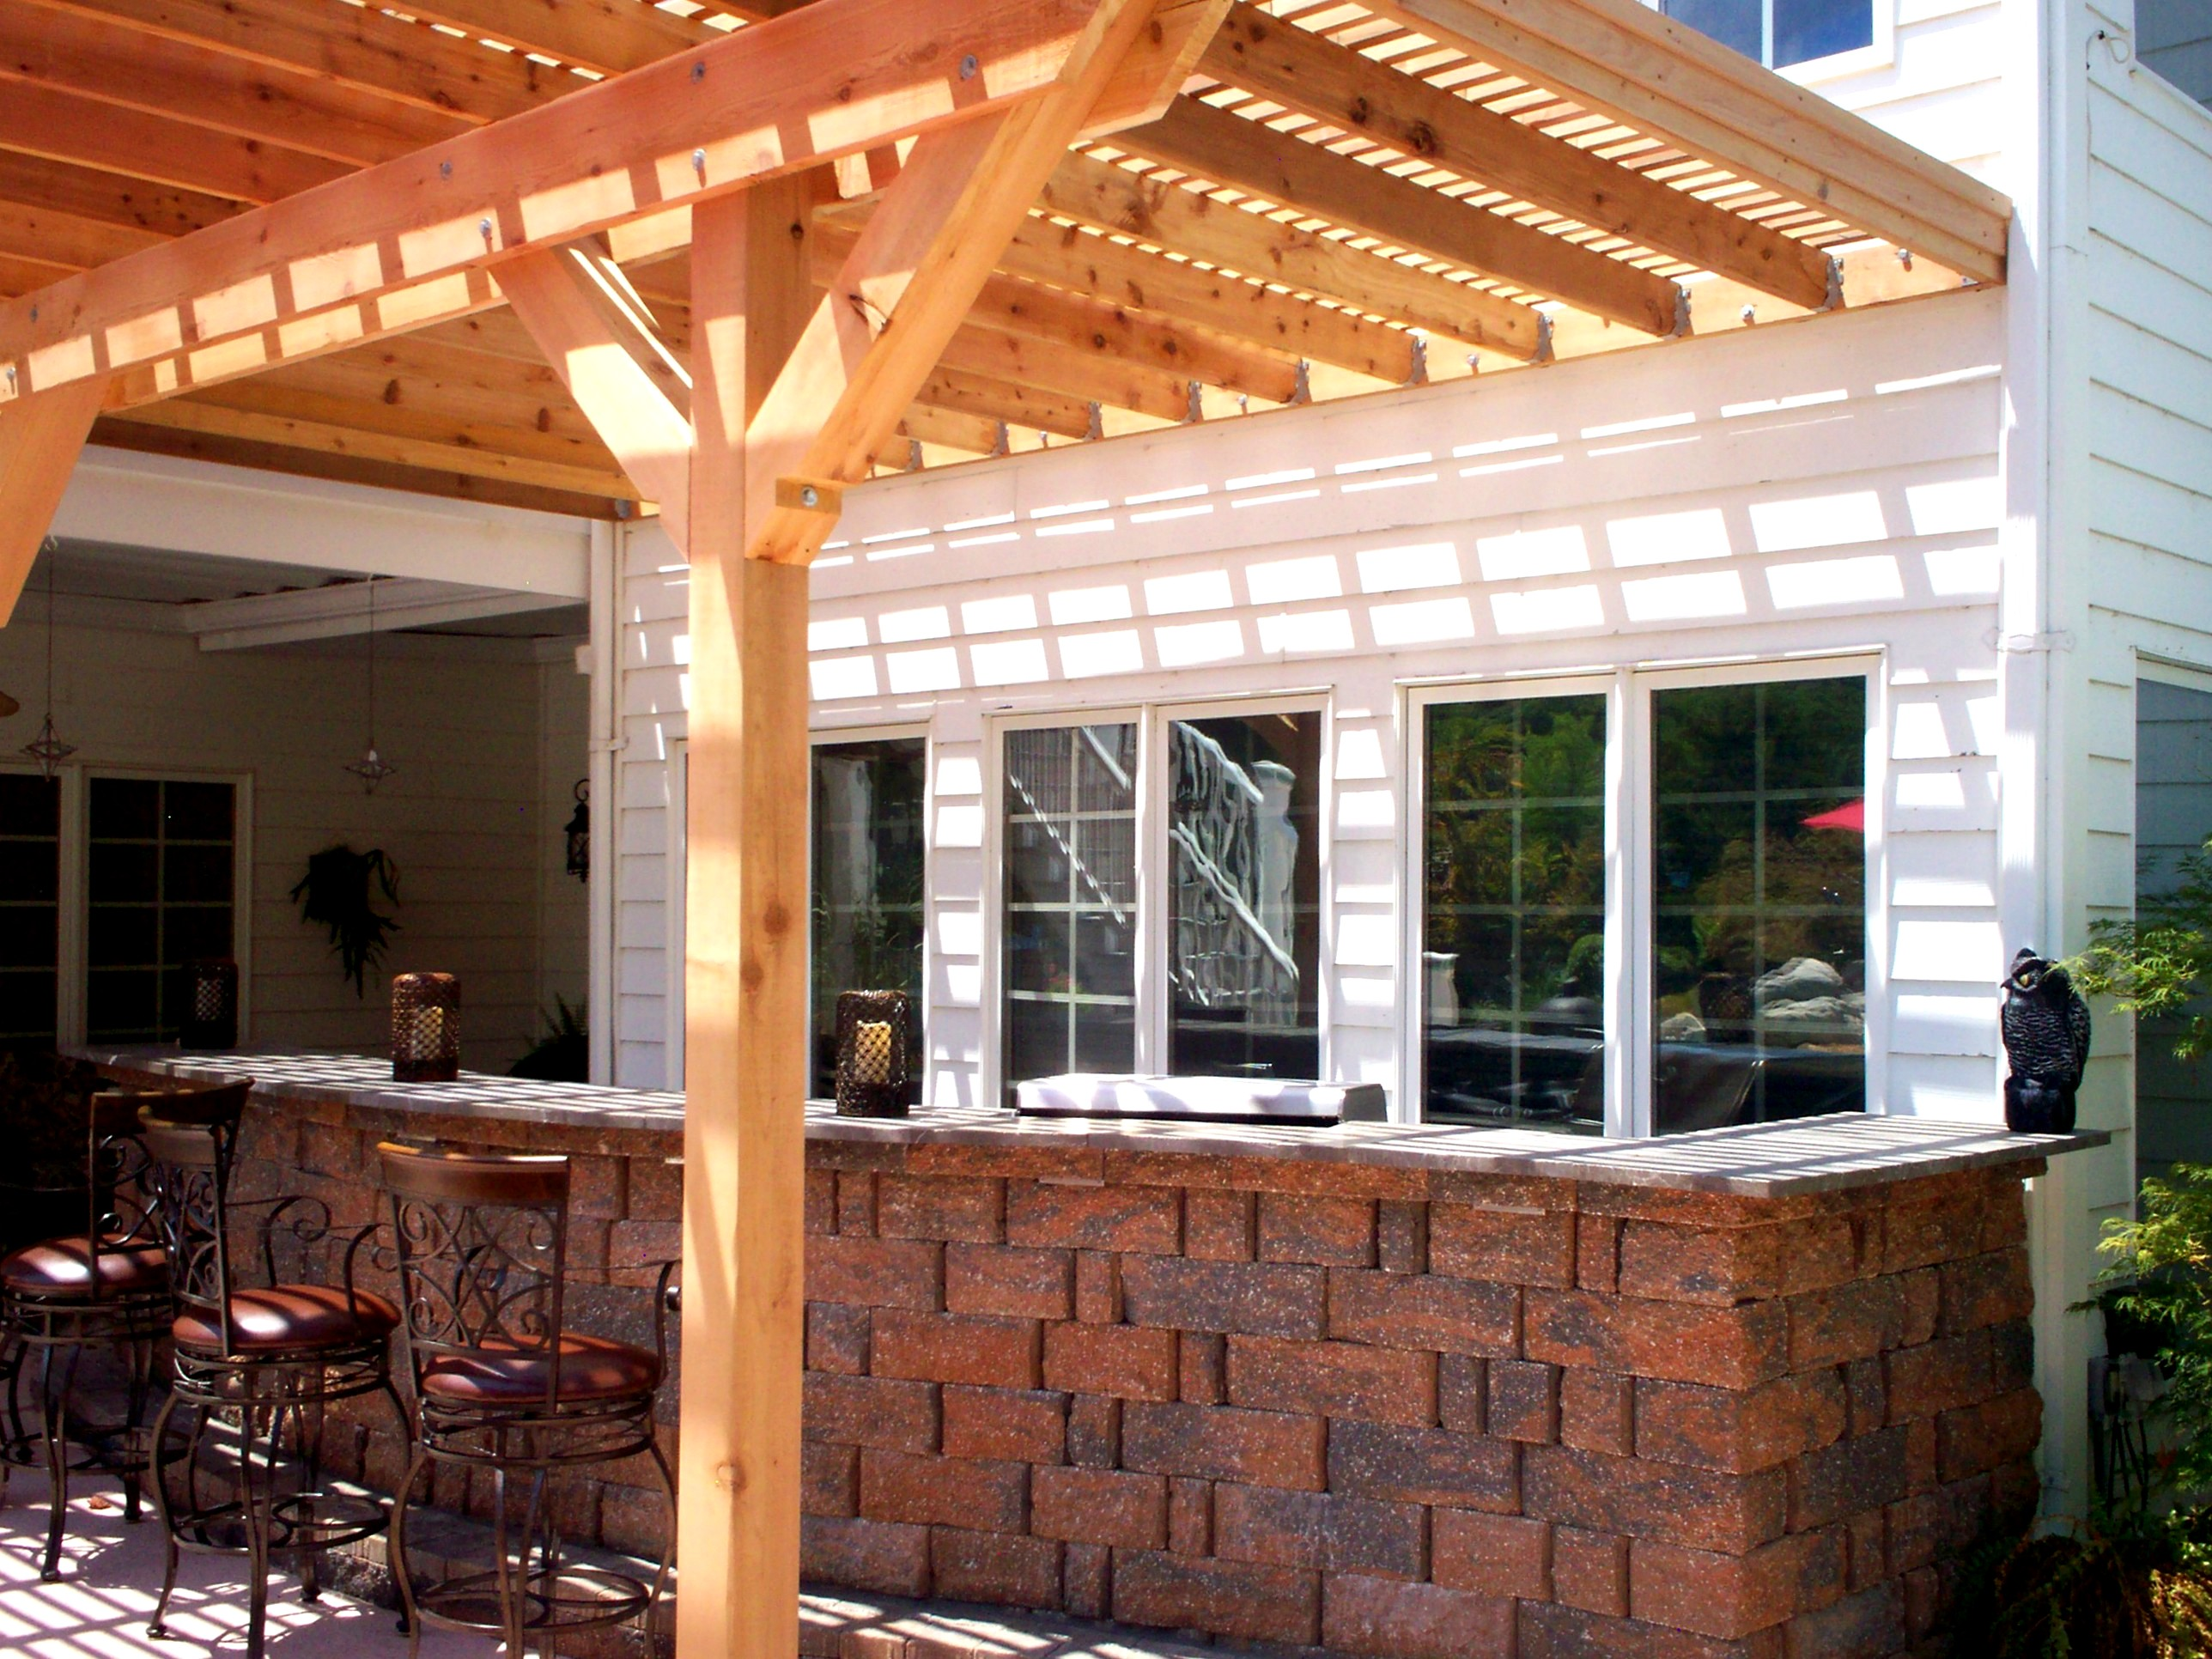 St Louis Deck Designs Turning An Outdoor Space Into An